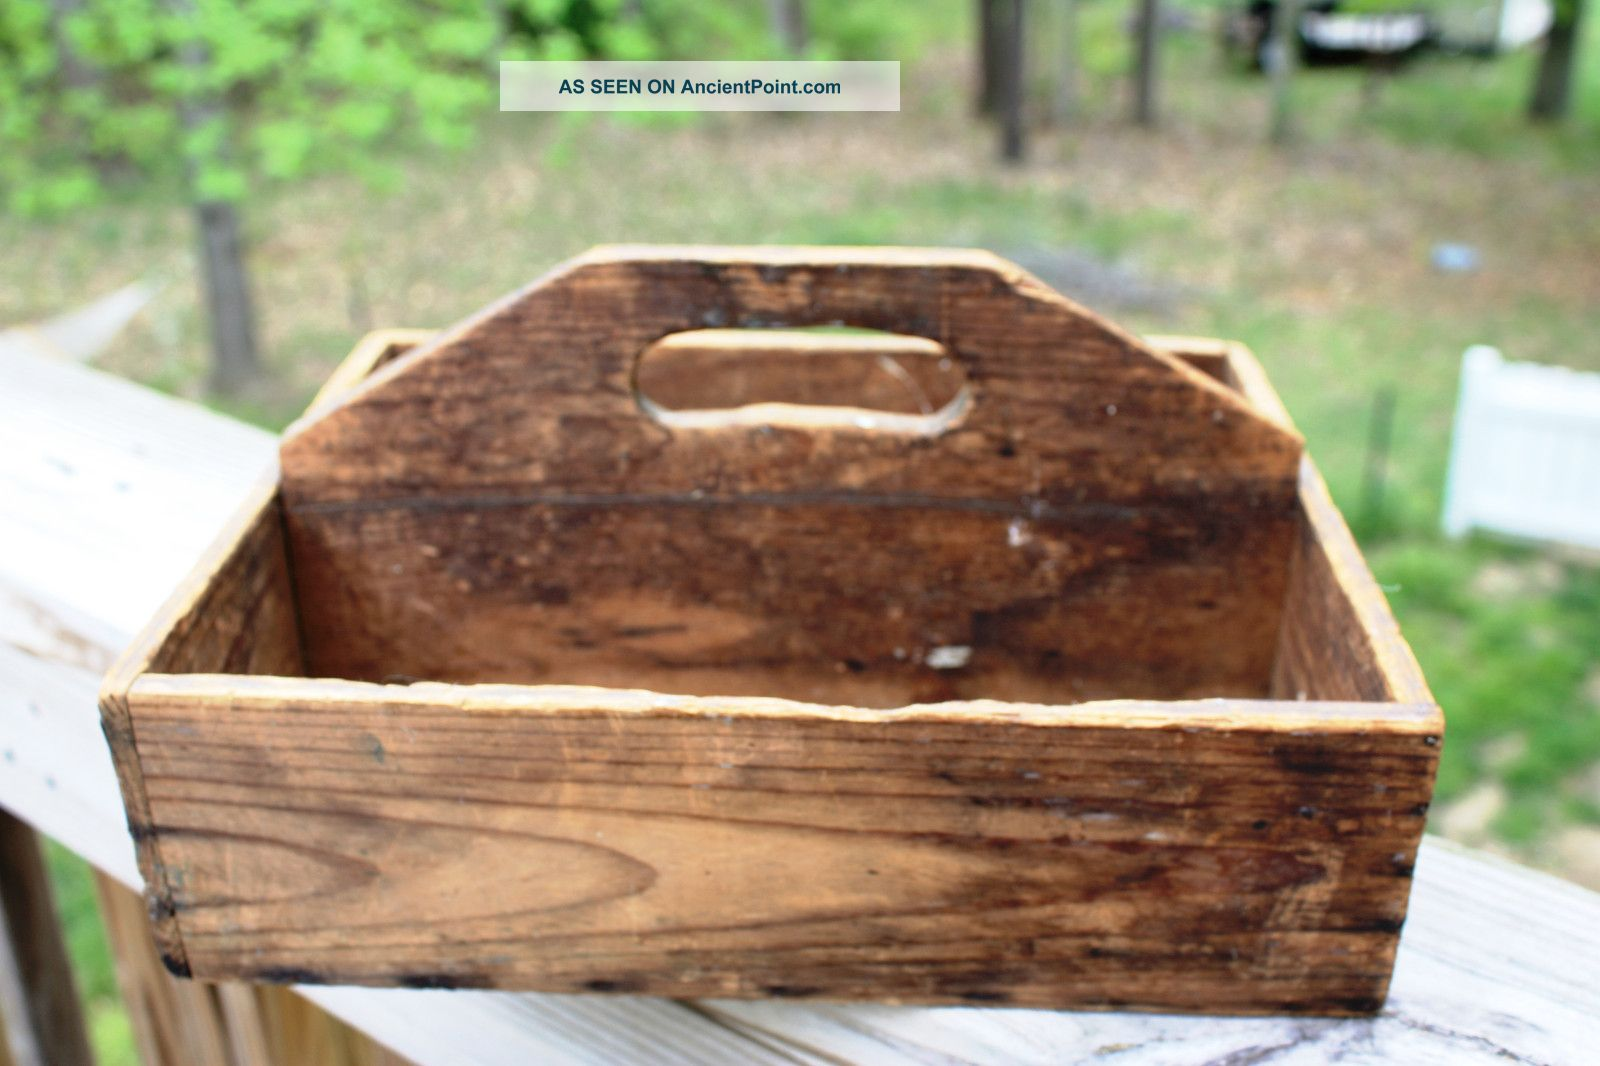 Antique Wooden Tool Caddy